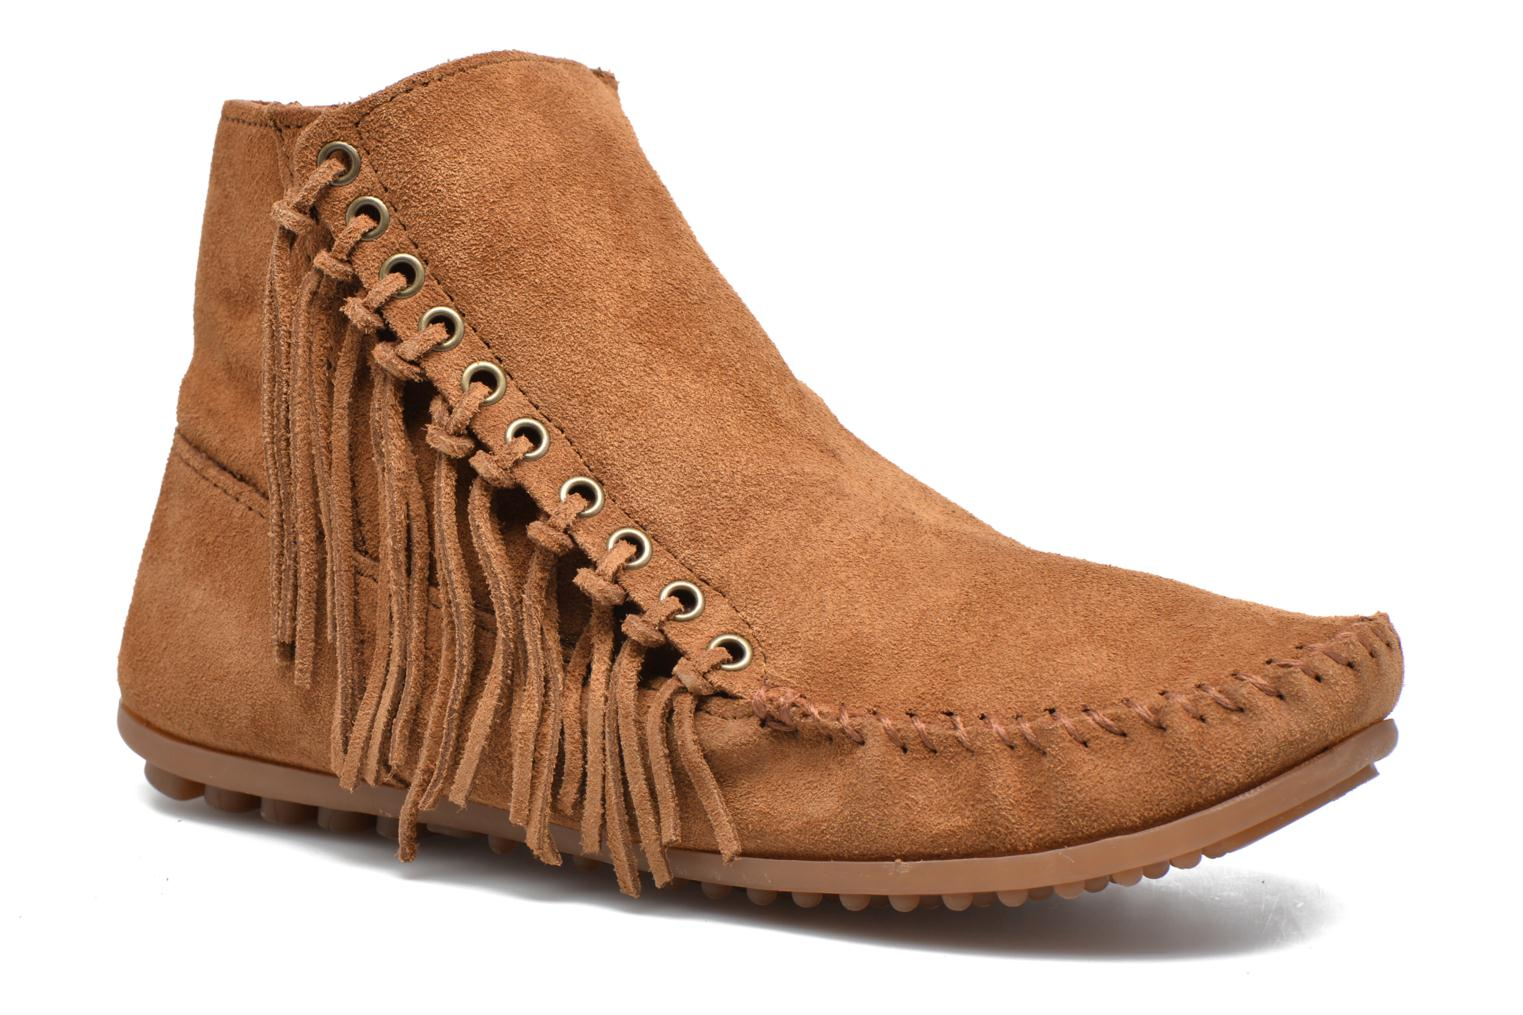 Marques Chaussure femme Minnetonka femme Isabel DUSTY BROWN SUEDE